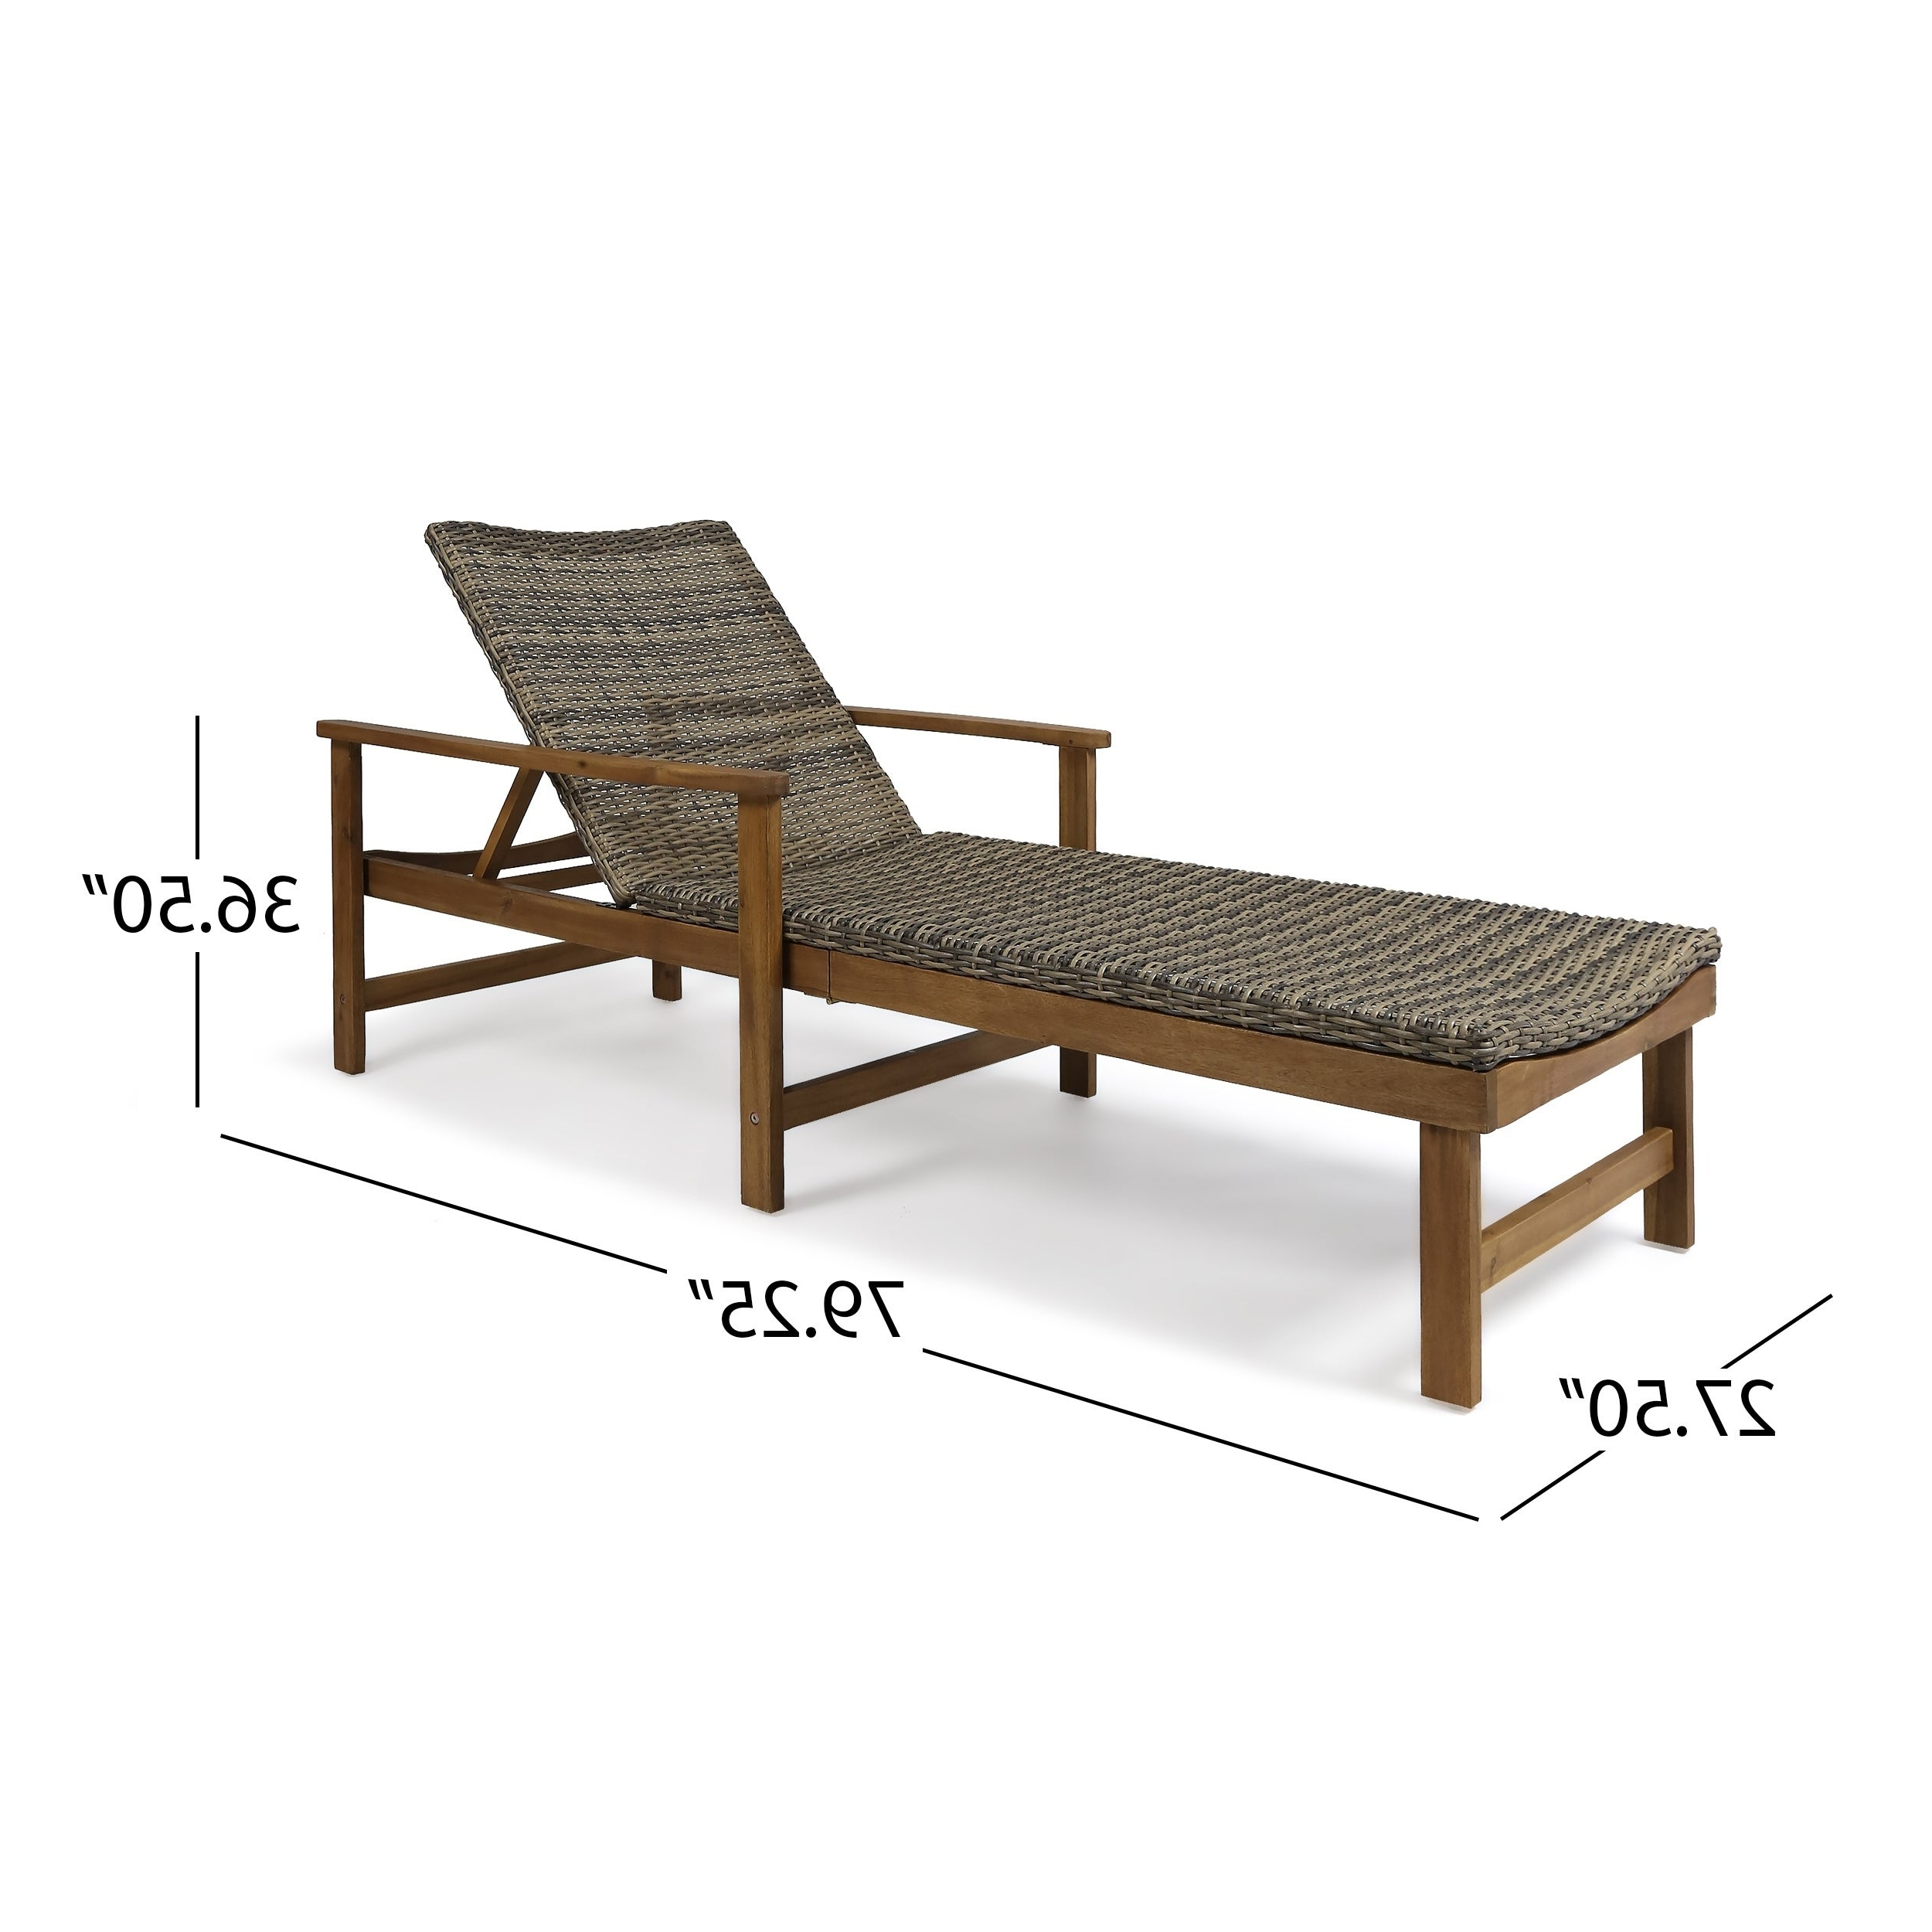 Outdoor Rustic Acacia Wood Chaise Lounges With Wicker Seats Pertaining To Current Details About Hampton Outdoor Rustic Acacia Wood Chaise Lounge With Wicker (Gallery 2 of 25)